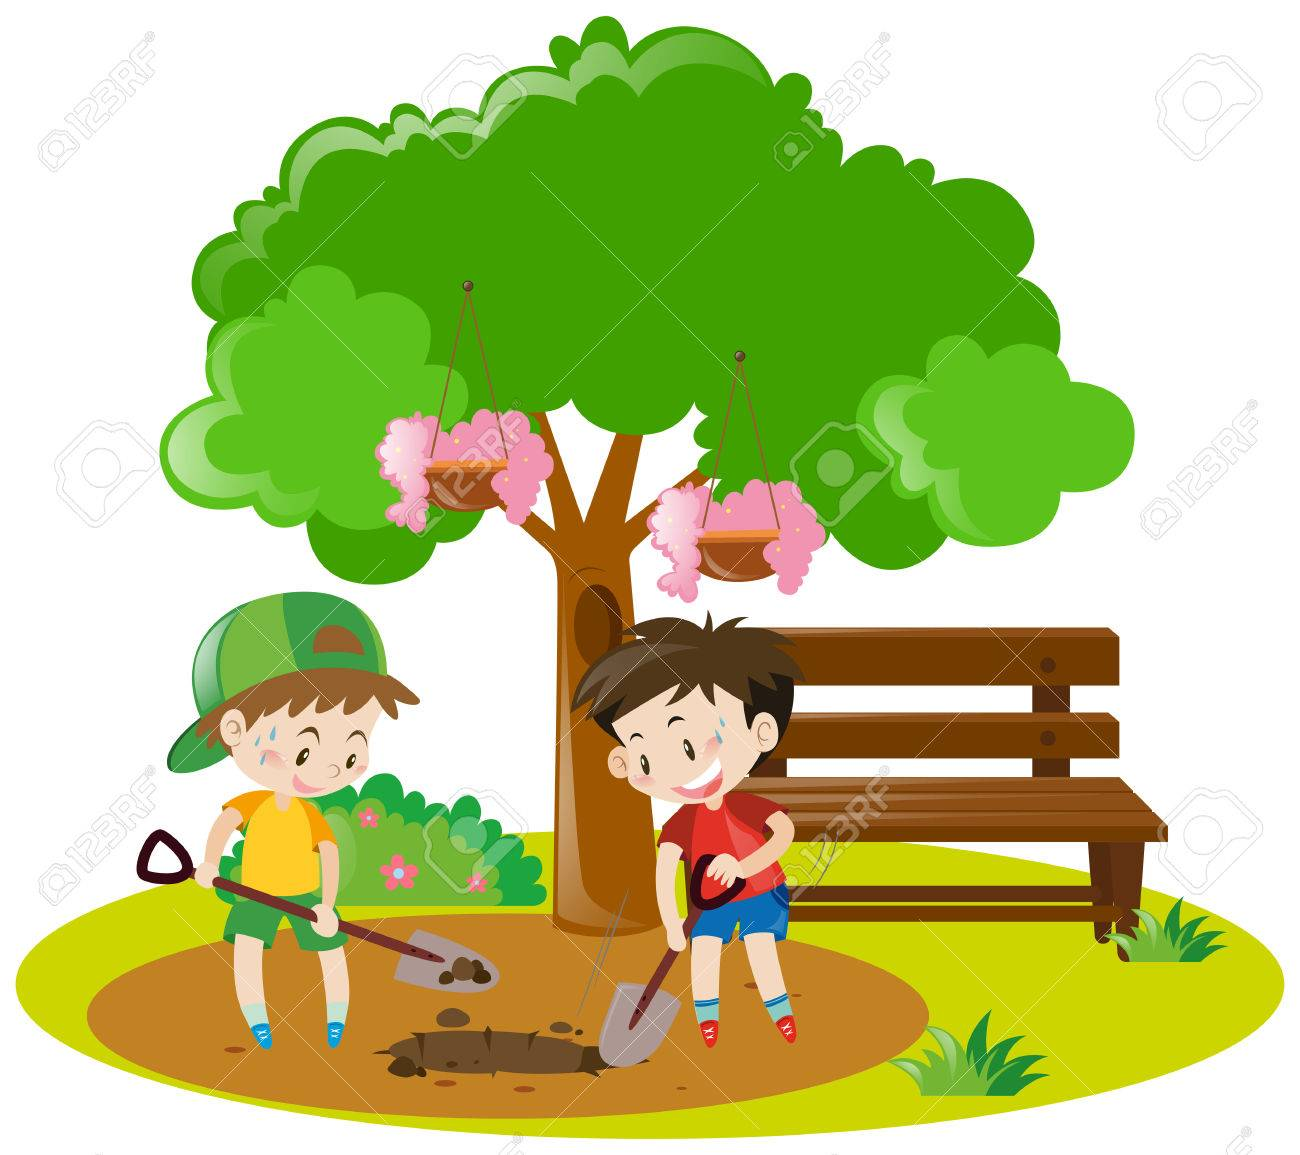 hight resolution of two boys digging hole in garden illustration stock vector 63492324